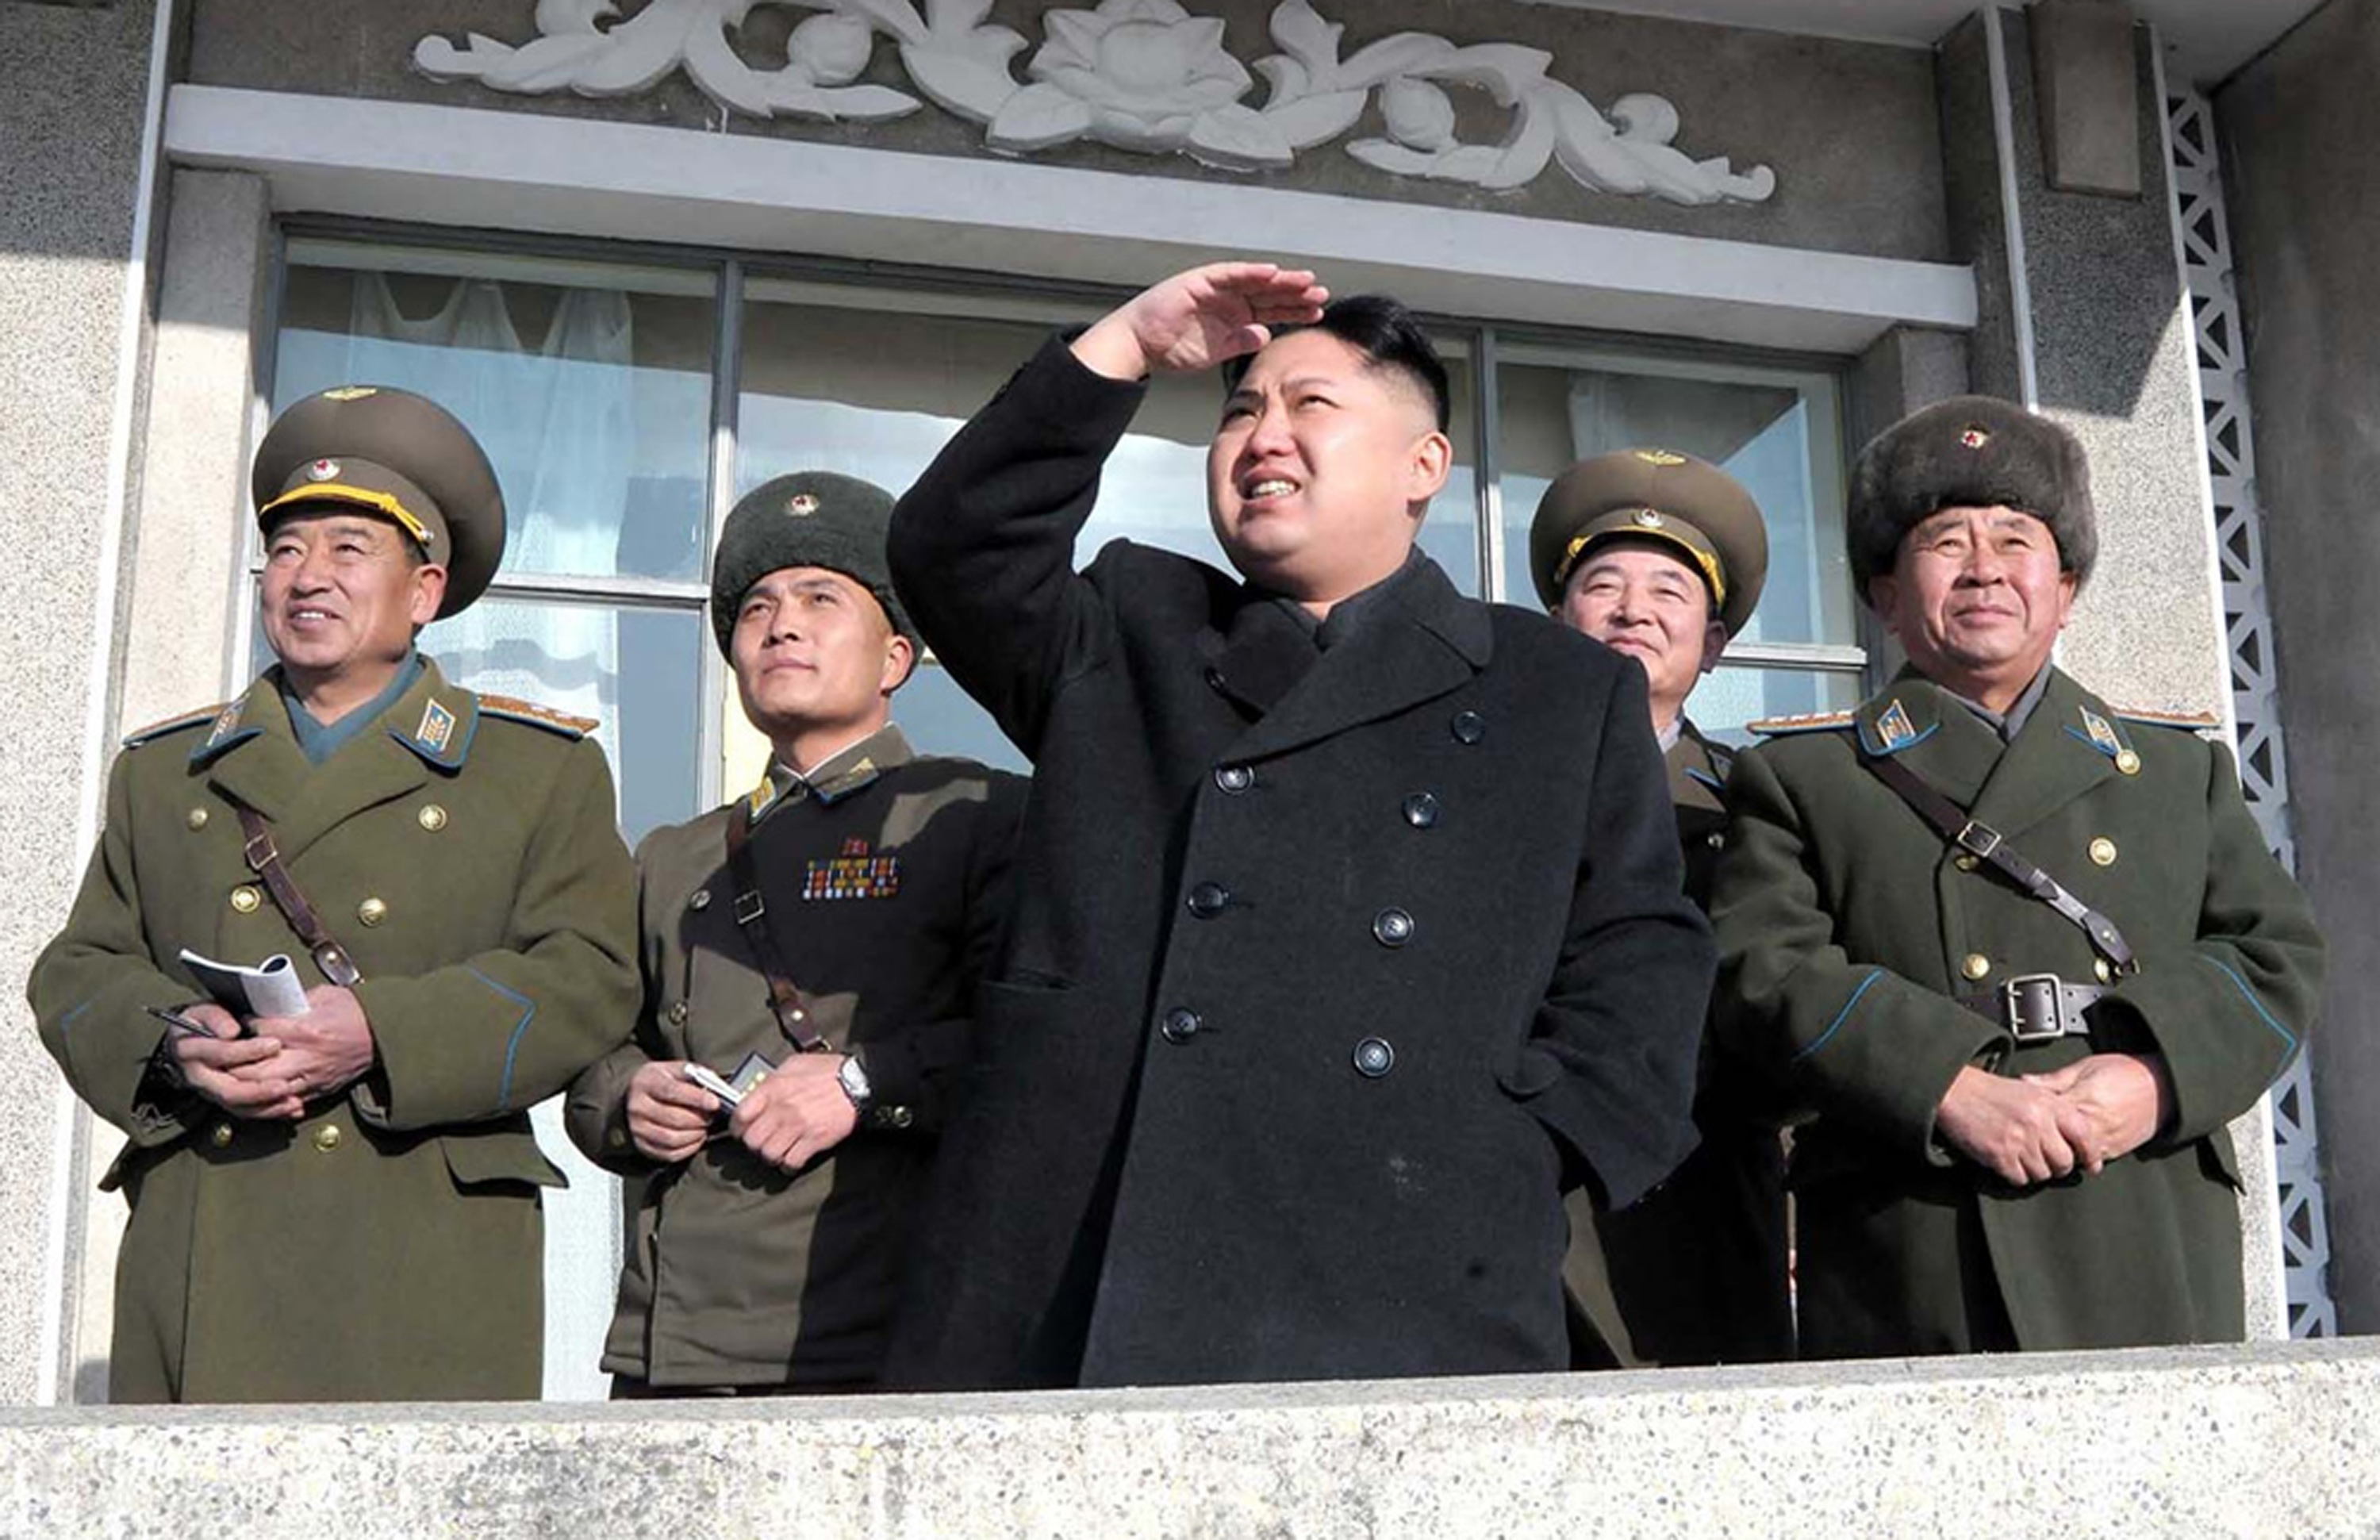 Kim Jong Un, center, inspects an air drill at an undisclosed air base in North Korea on Feb. 1, 2012. (AP Photo/KCNA via KNS)